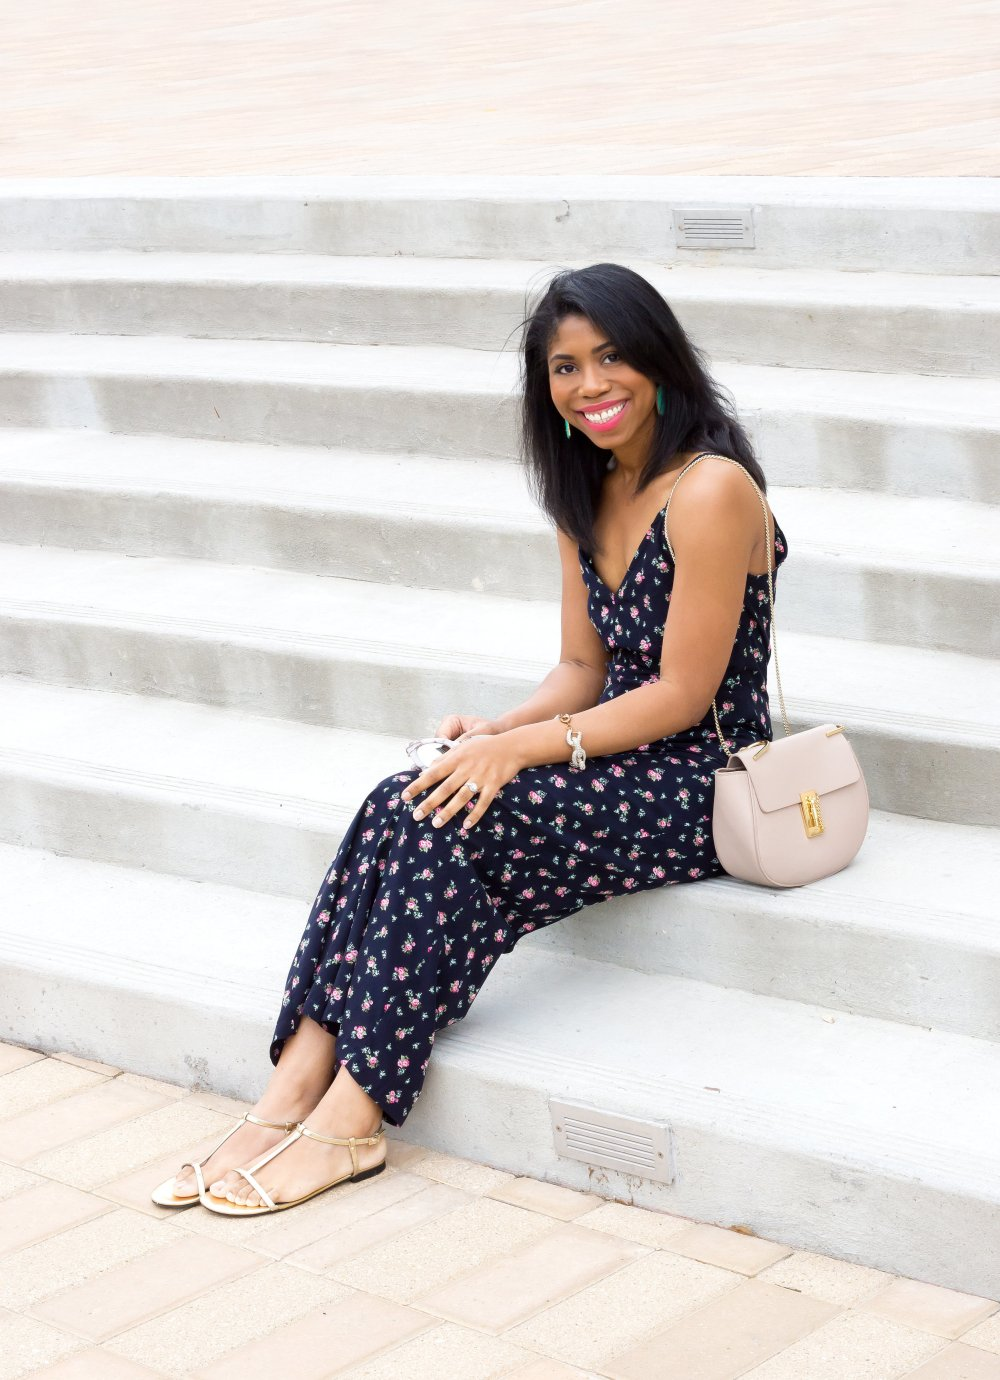 spring summer style floral jumpsuit under $100 chloe handbag stephanie taylor jackson best black fashion bloggers